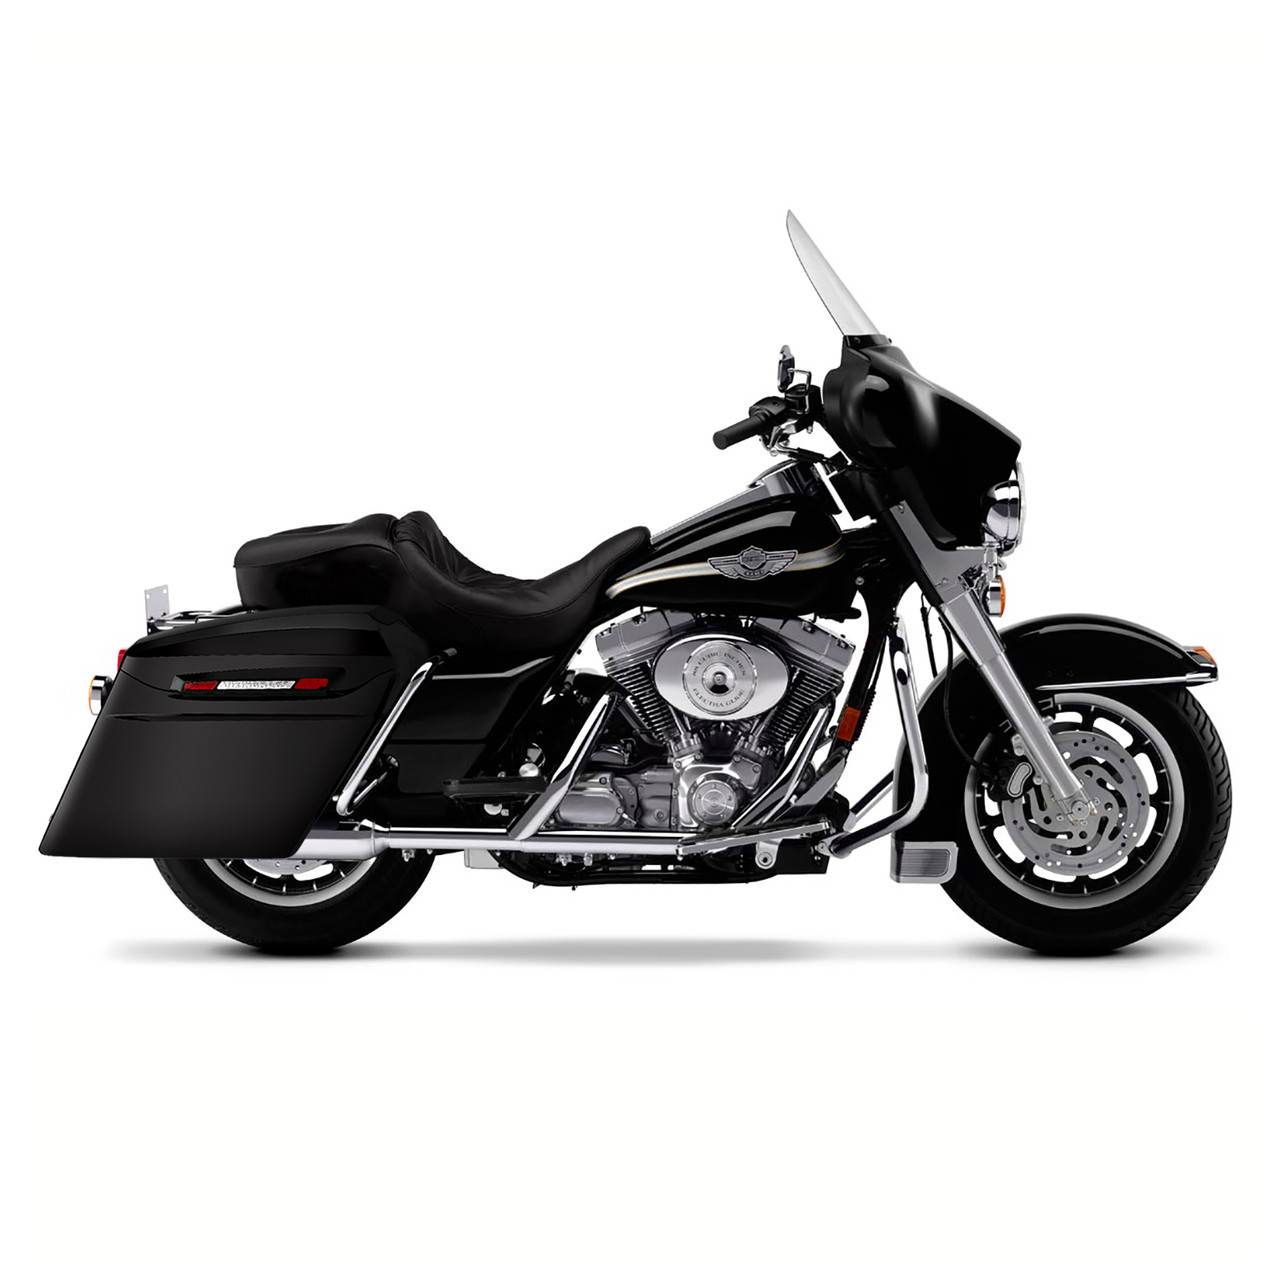 Harley Electra Glide Touring Bagger Extended Stretched Saddlebags